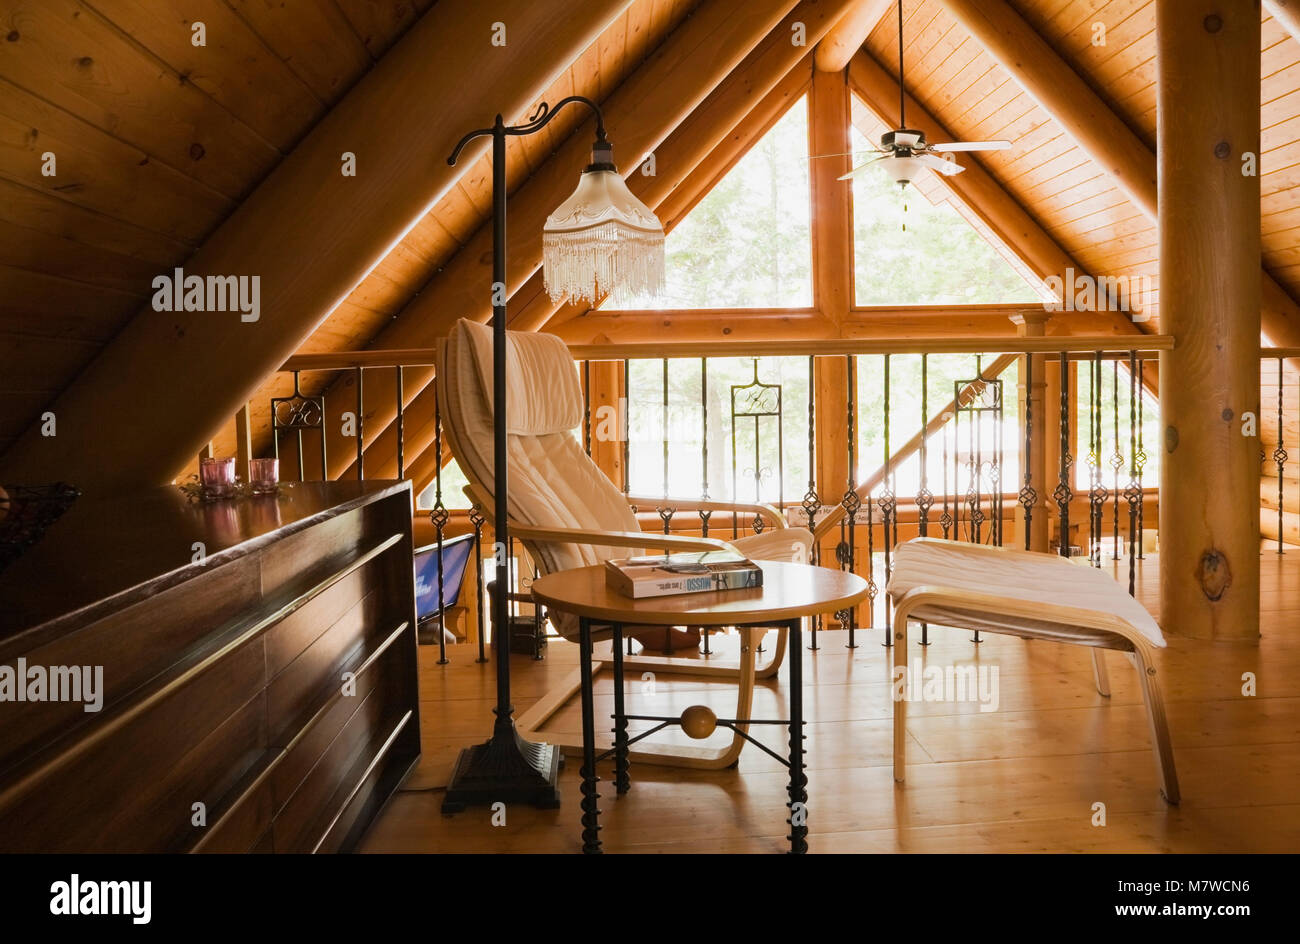 Wood and white leather armchair in the master bedroom on the upstairs floor inside a residential log home. - Stock Image